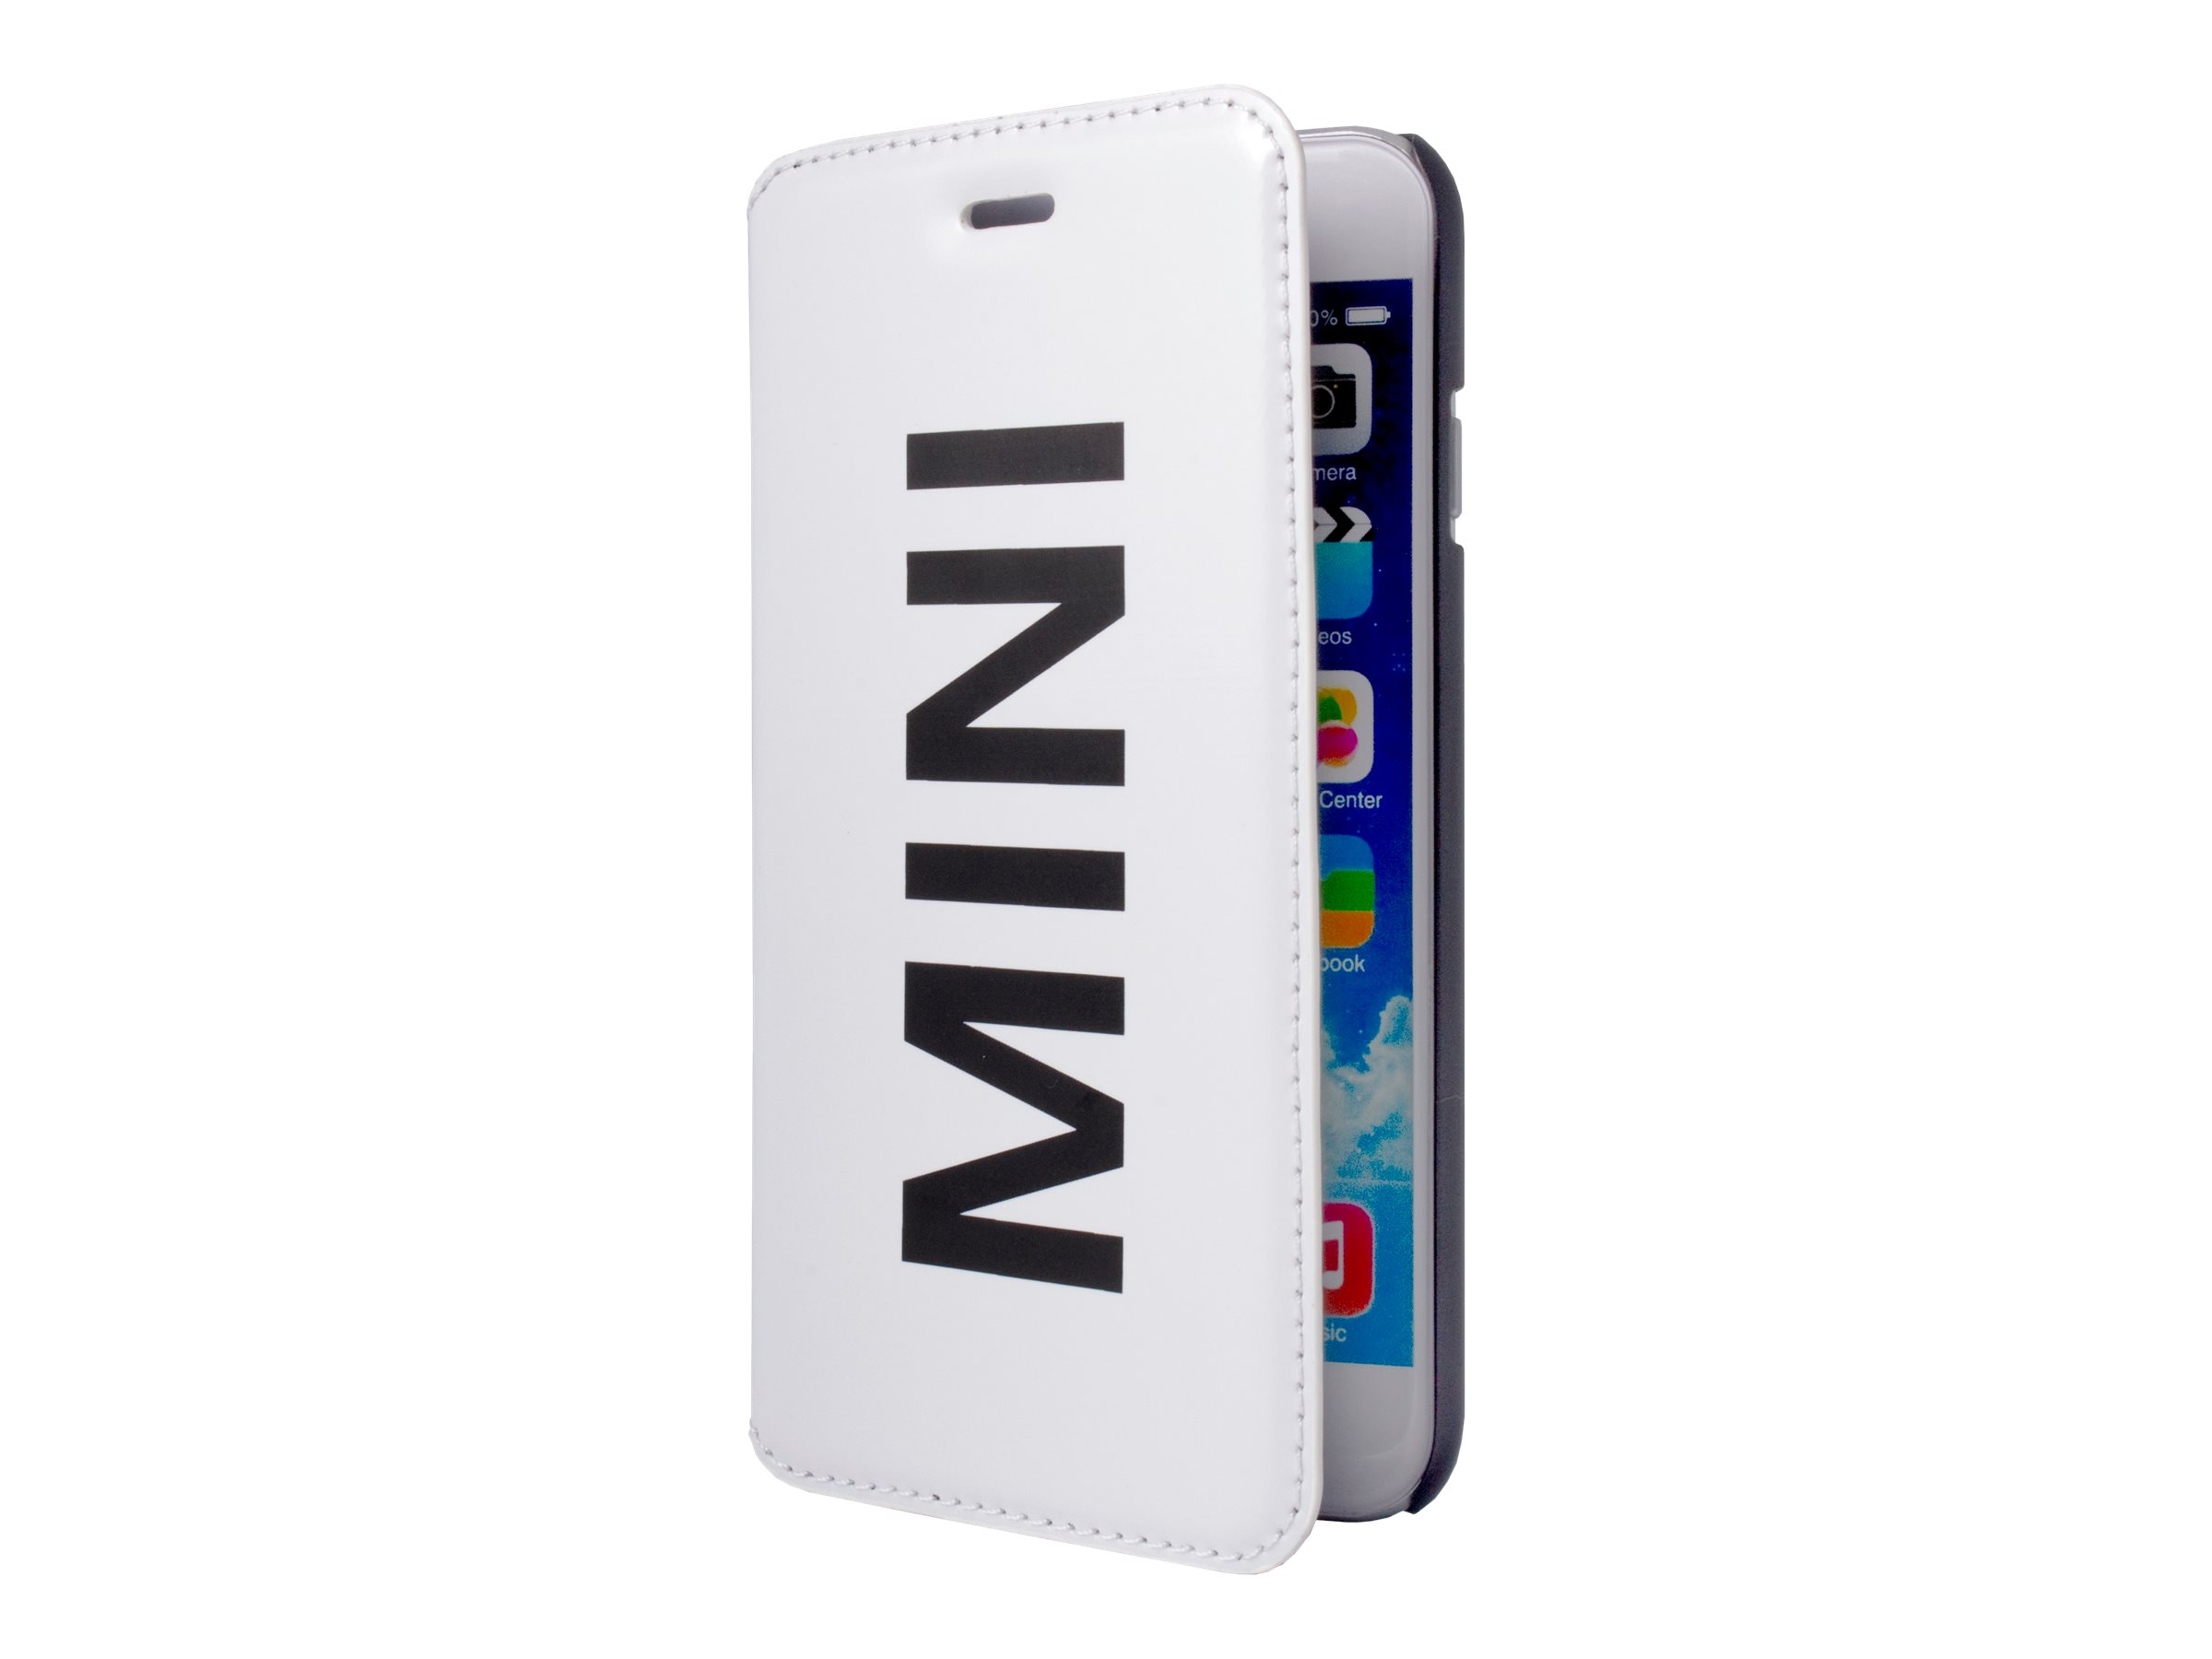 MINI Folio case - Protection à rabat  pour Apple iPhone 5, 5s - vinyle blanc